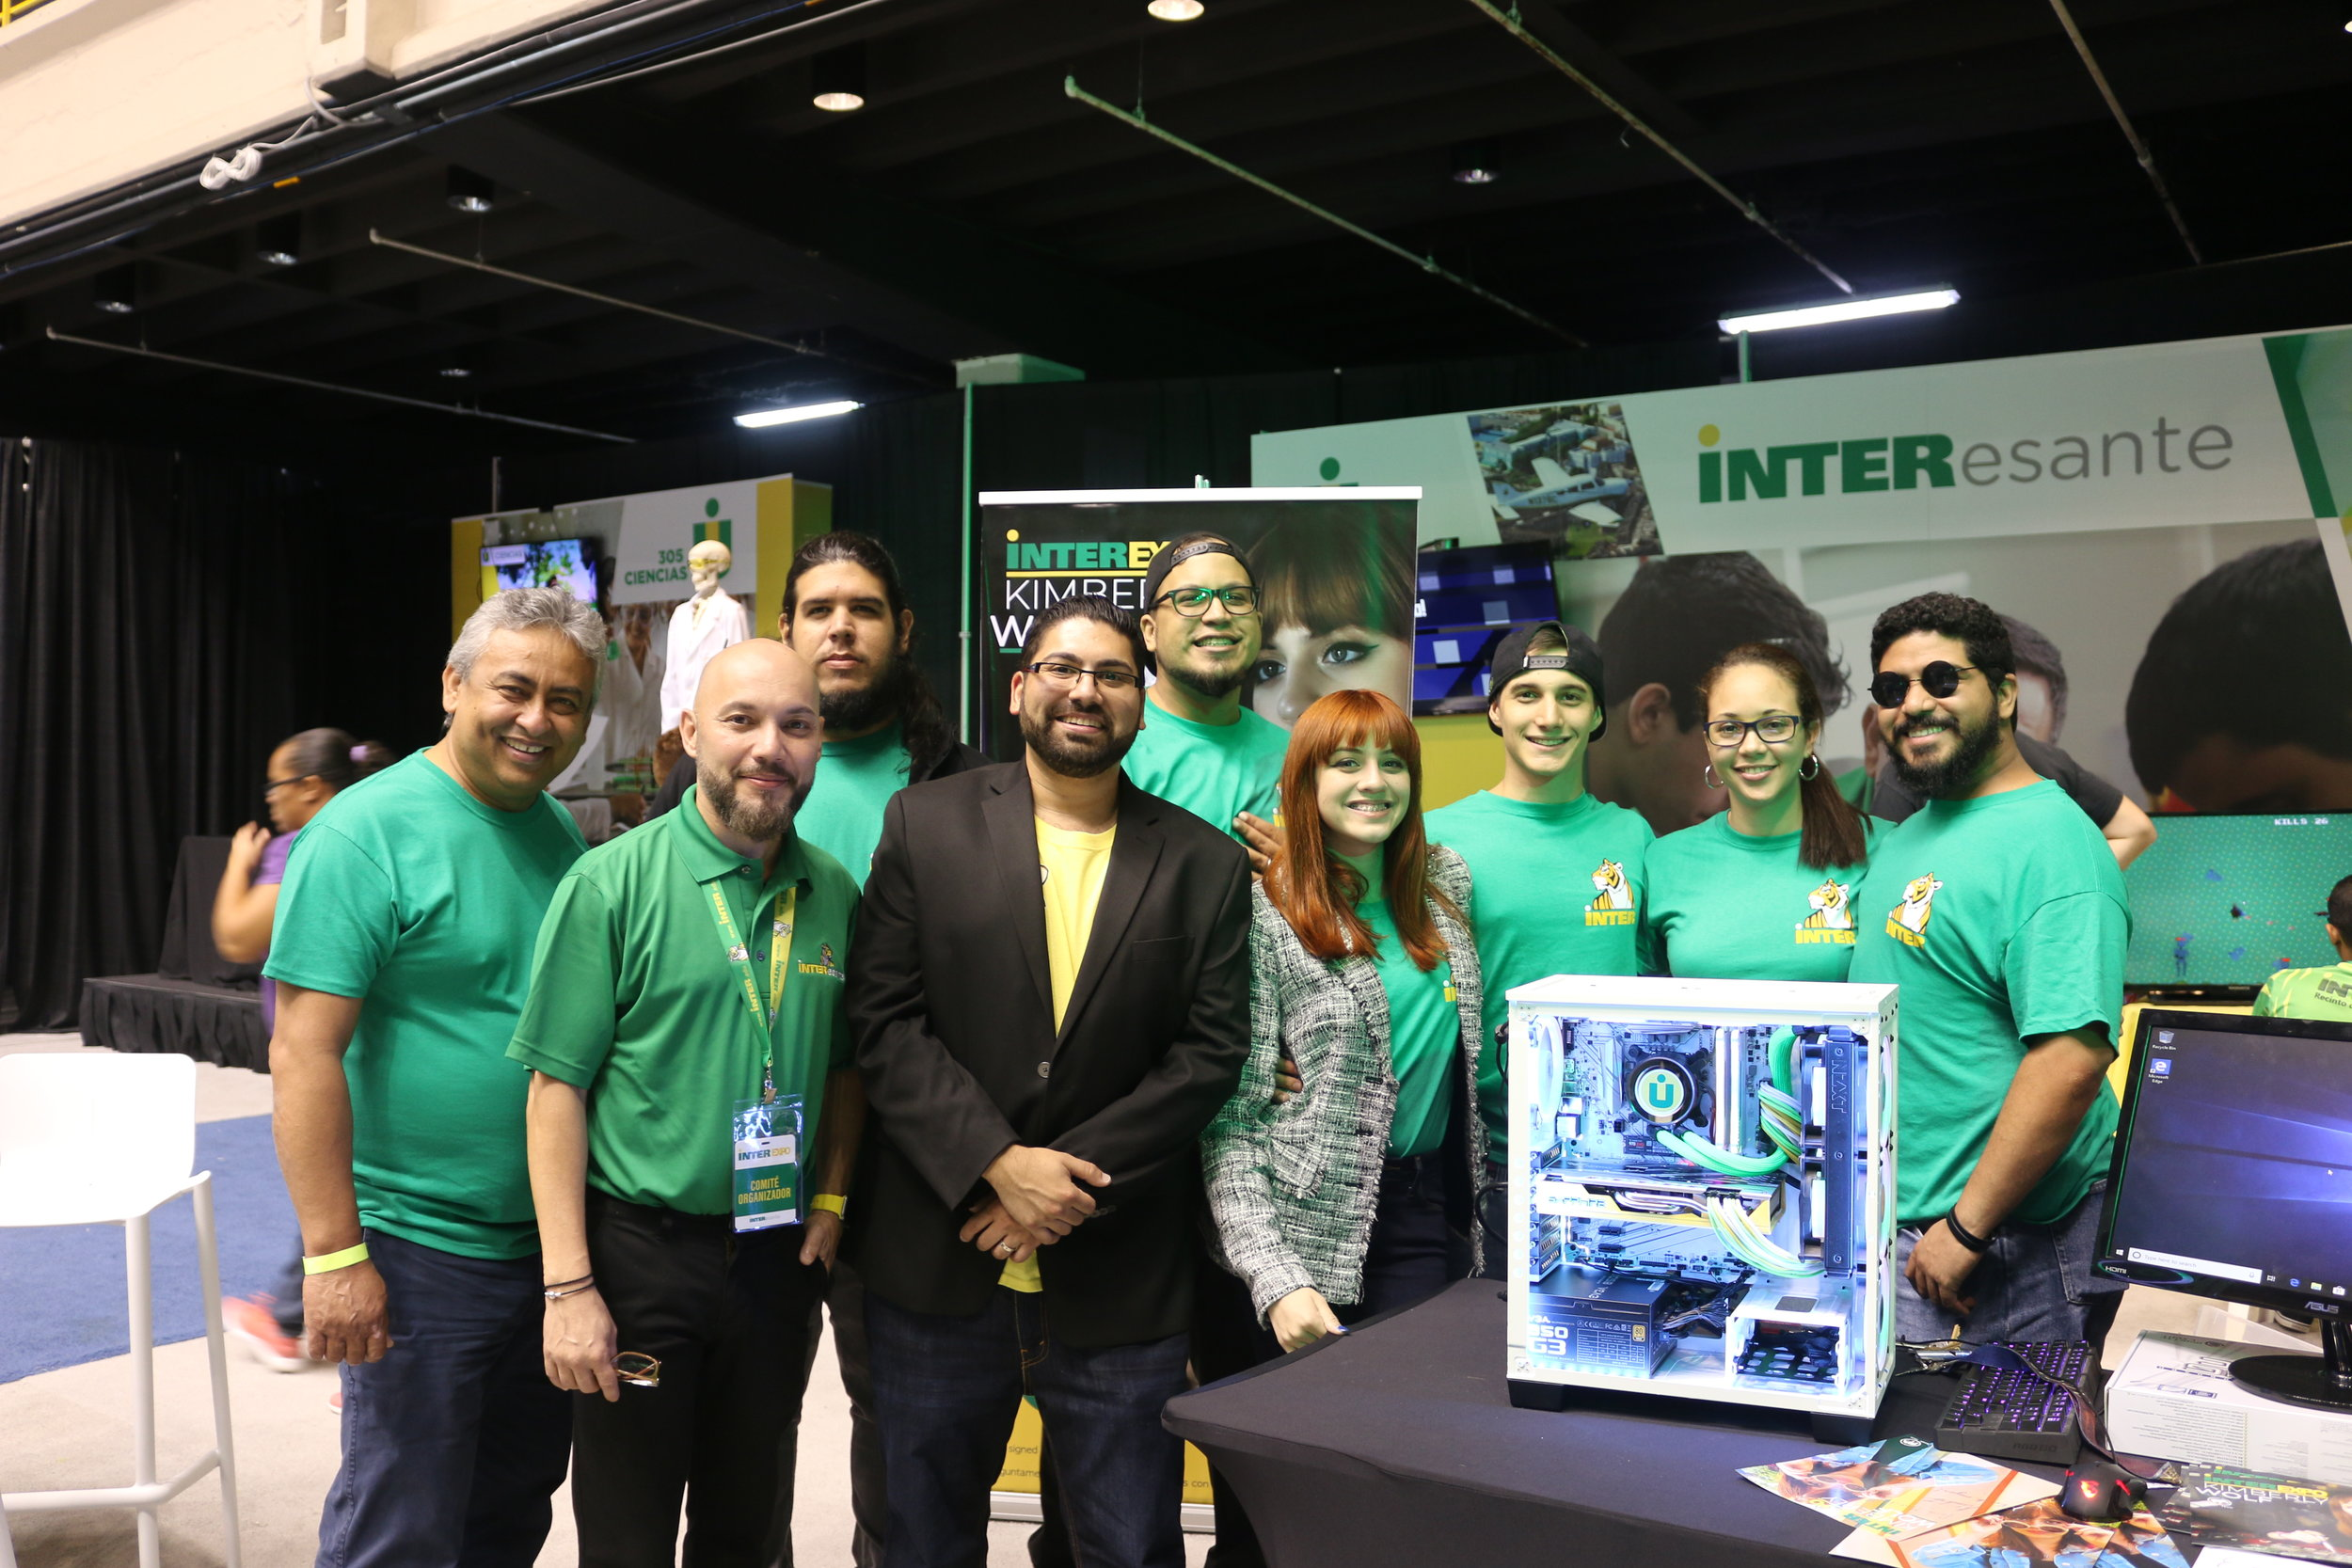 The InterAmericana University Staff and the Bandi Tech Staff at the InterExpo